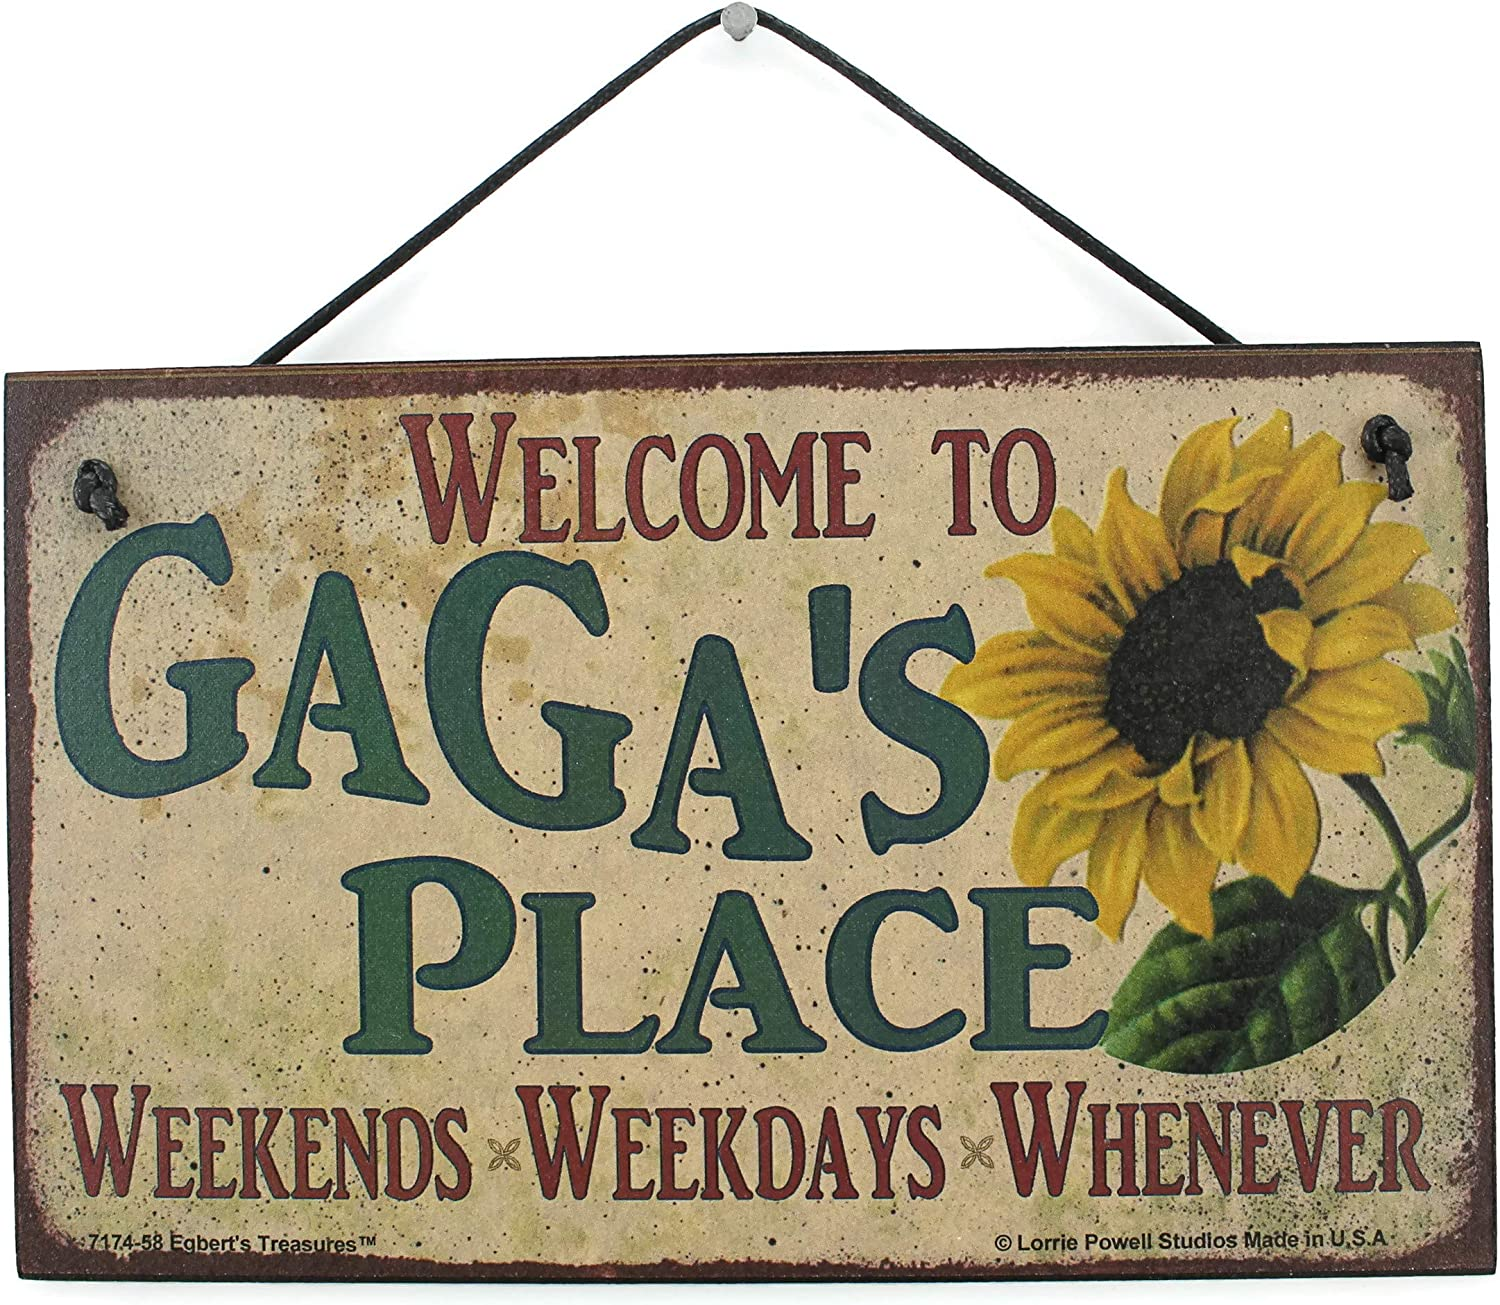 Egbert's Treasures 5x8 Vintage Style Sign with Sunflower Saying, Welcome to GAGA'S Place Weekends, Weekdays, Whenever Decorative Fun Universal Household Family Signs for Grandma (5x8)